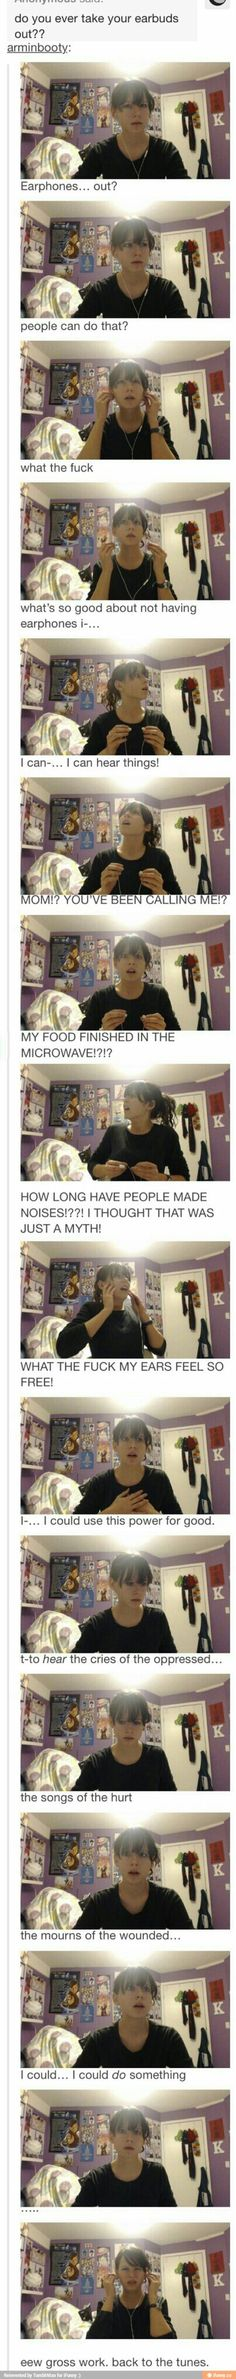 Tumblr GENIUS ❤. Also me when I am listening to a song and don't want to stop lol